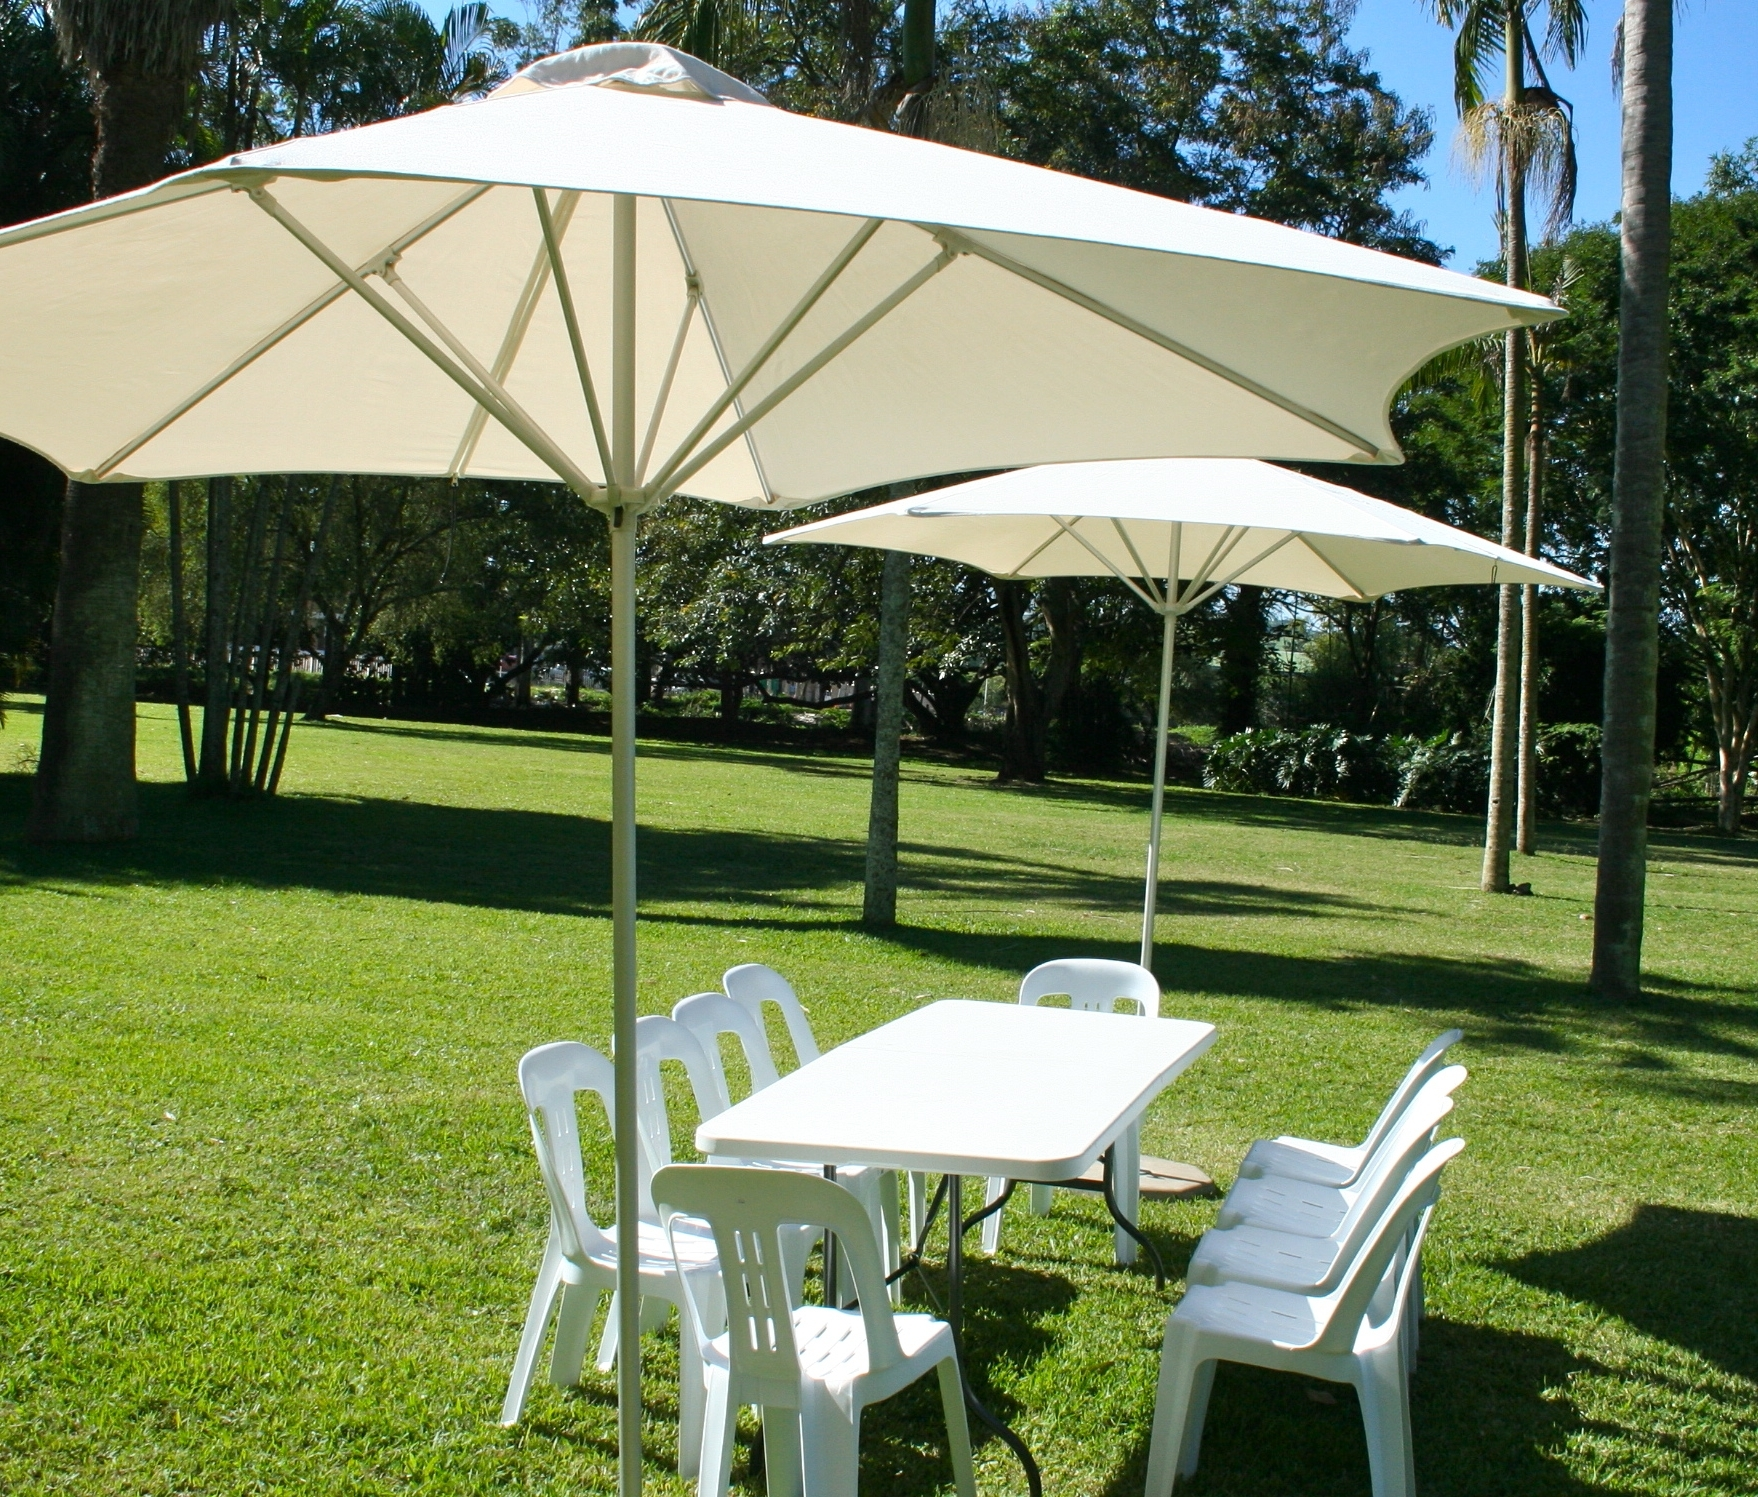 Widely Used Patio Umbrellas For Rent Within Outdoor Patio Umbrella – Rental Umbrella Hire (View 2 of 20)